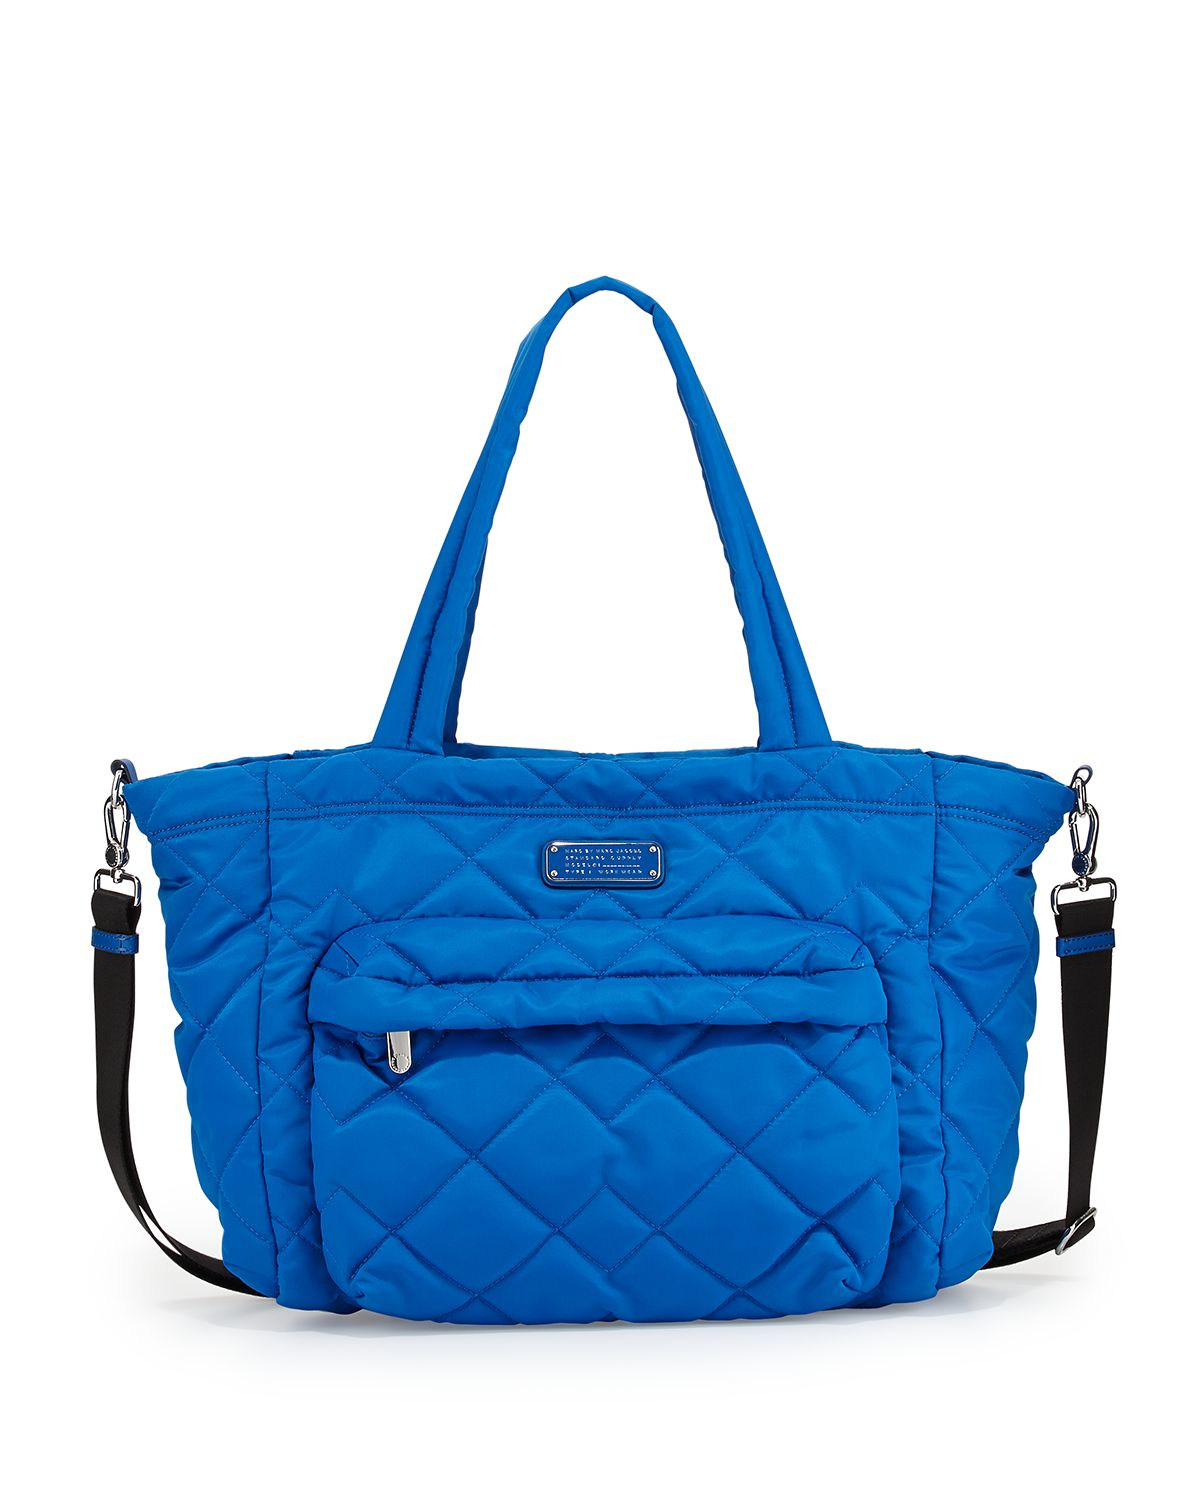 marc by marc jacobs crosby quilt nylon diaper bag in blue. Black Bedroom Furniture Sets. Home Design Ideas